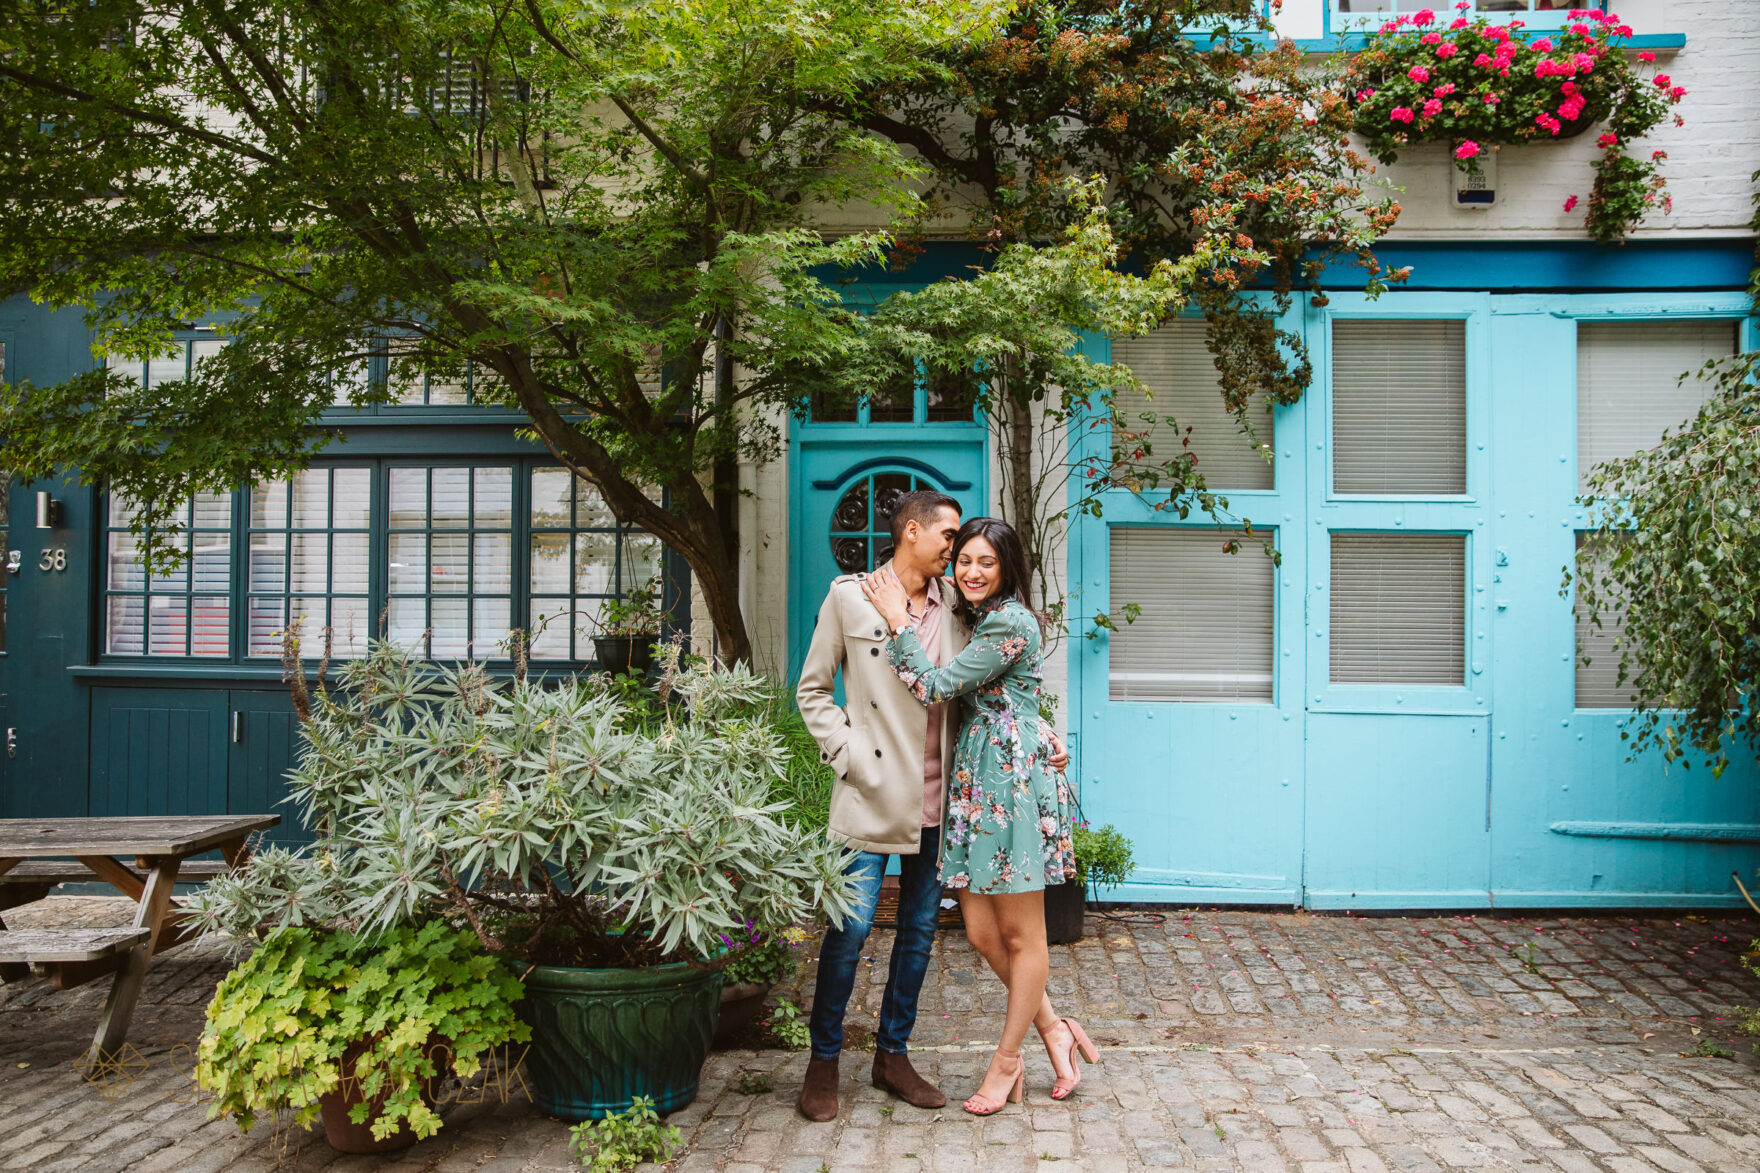 Asian pre wedding photos from London Mews